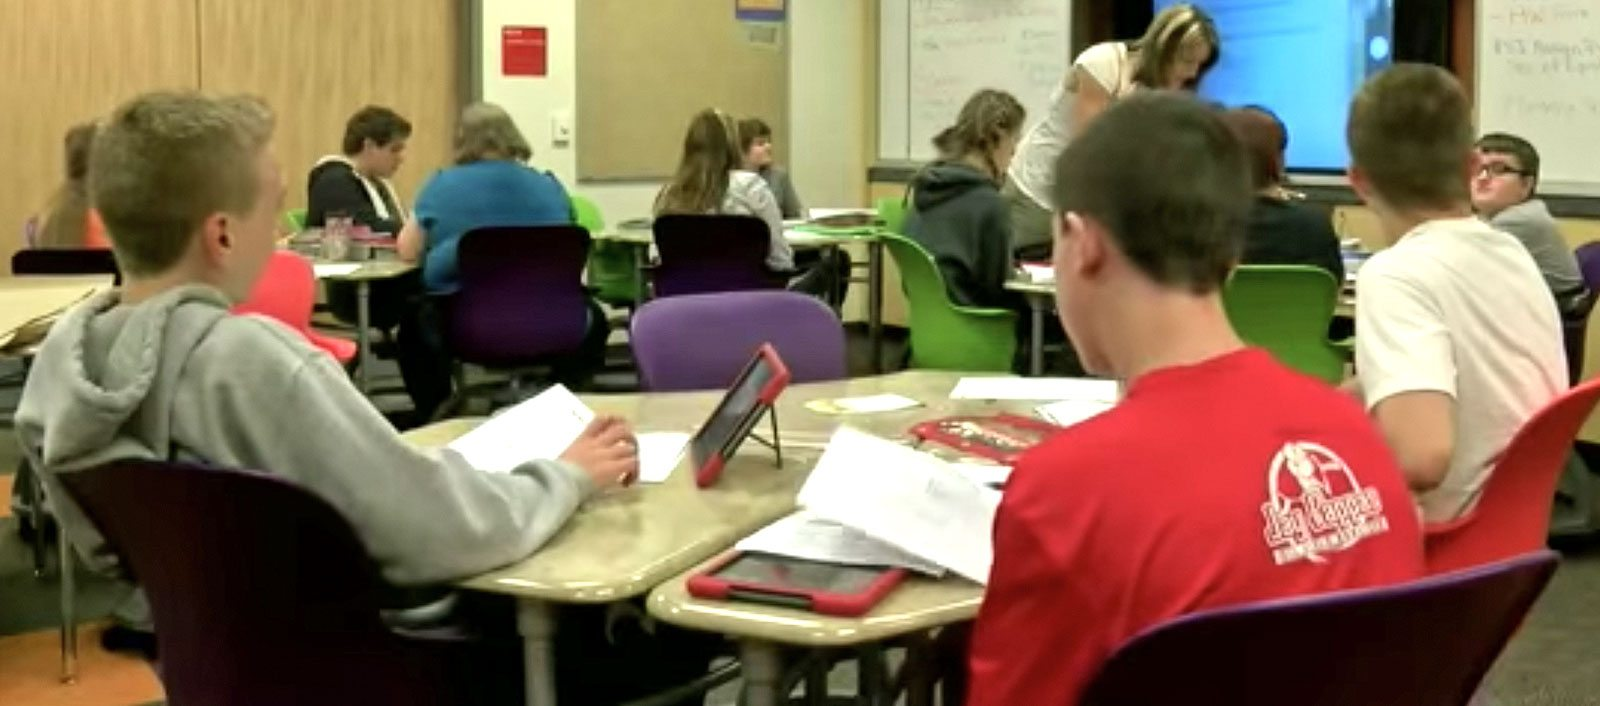 Haskell furniture is a part of high tech learning at Beaver Local Schools